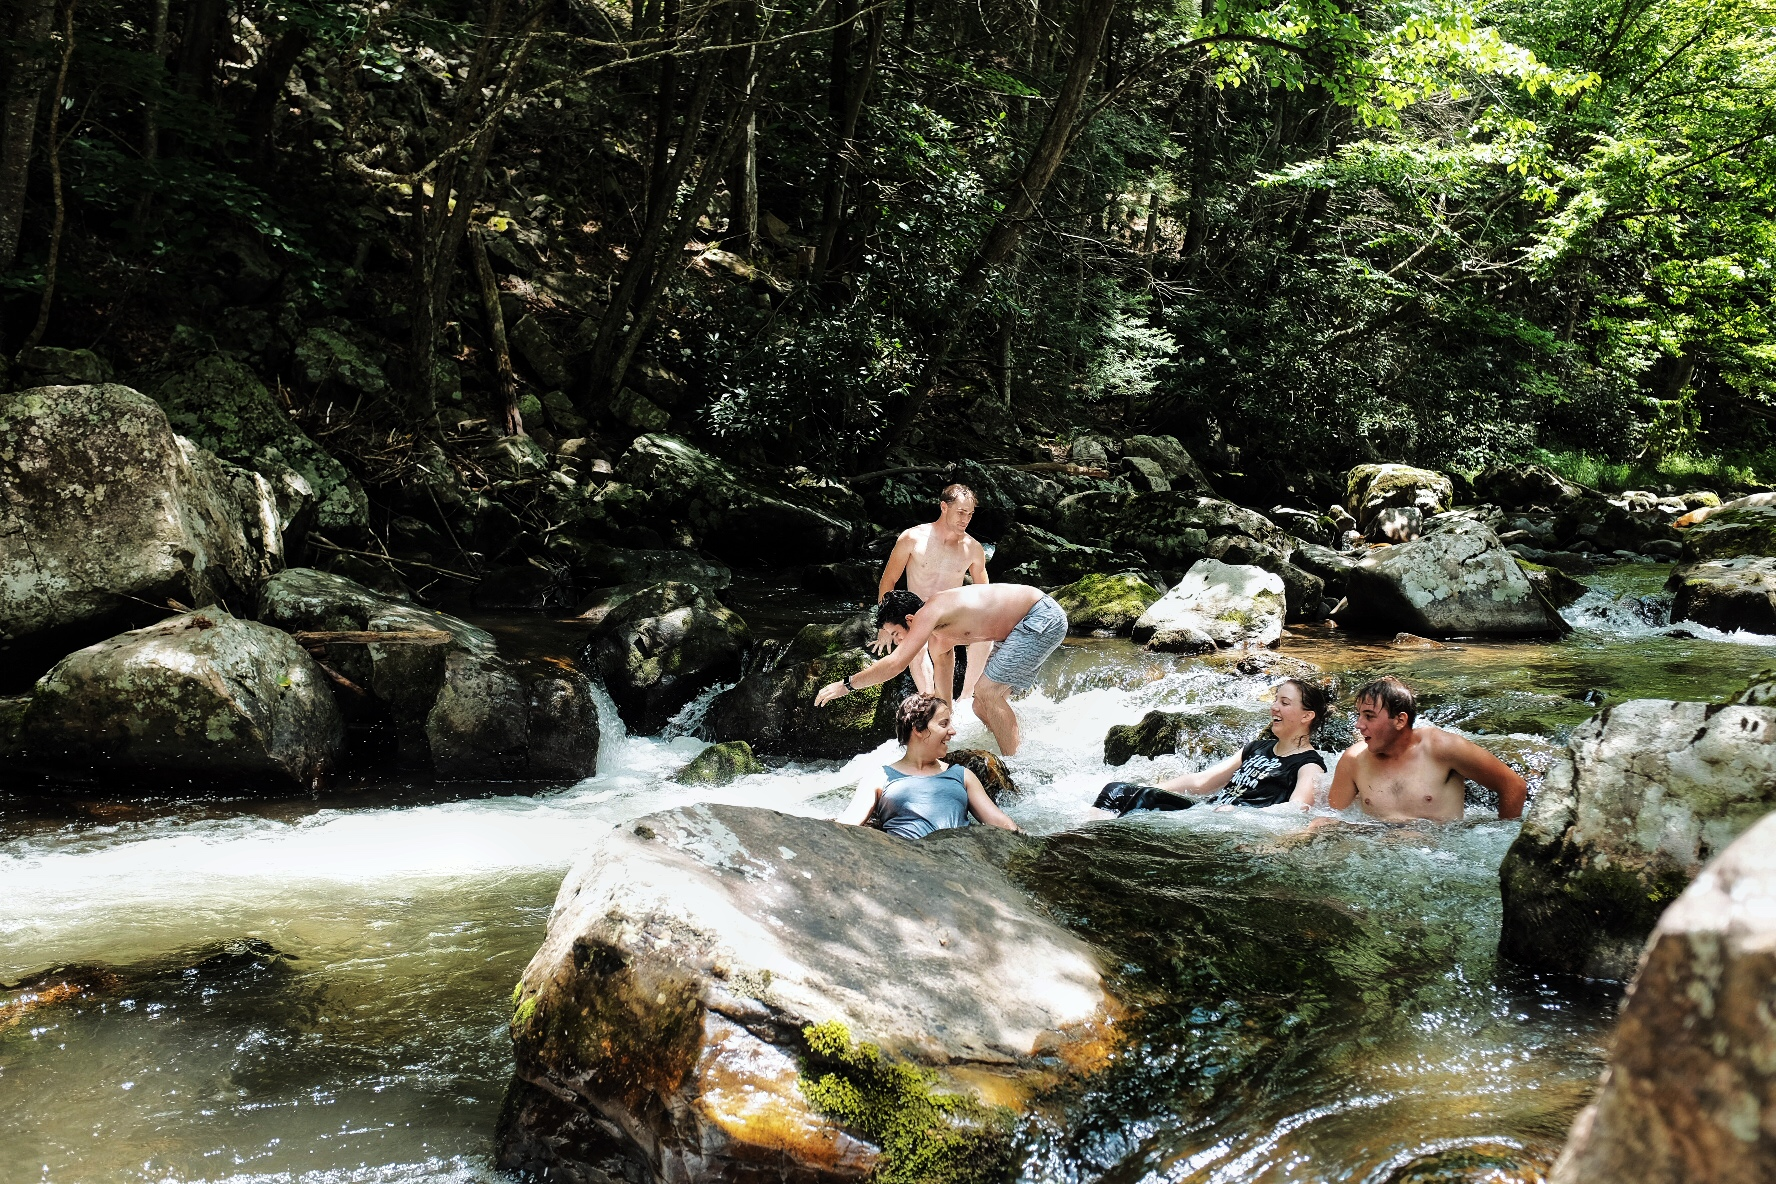 The Swimming Hole - We took our sweet time, stopping when we felt like it, and once when we found a swimming hole decided to take the plunge. It was really a lovely little spot to jump in; a rock jutted into the stream hollowing out a 5' deep place just right for a cannonball.It was one of the best parts of the day.